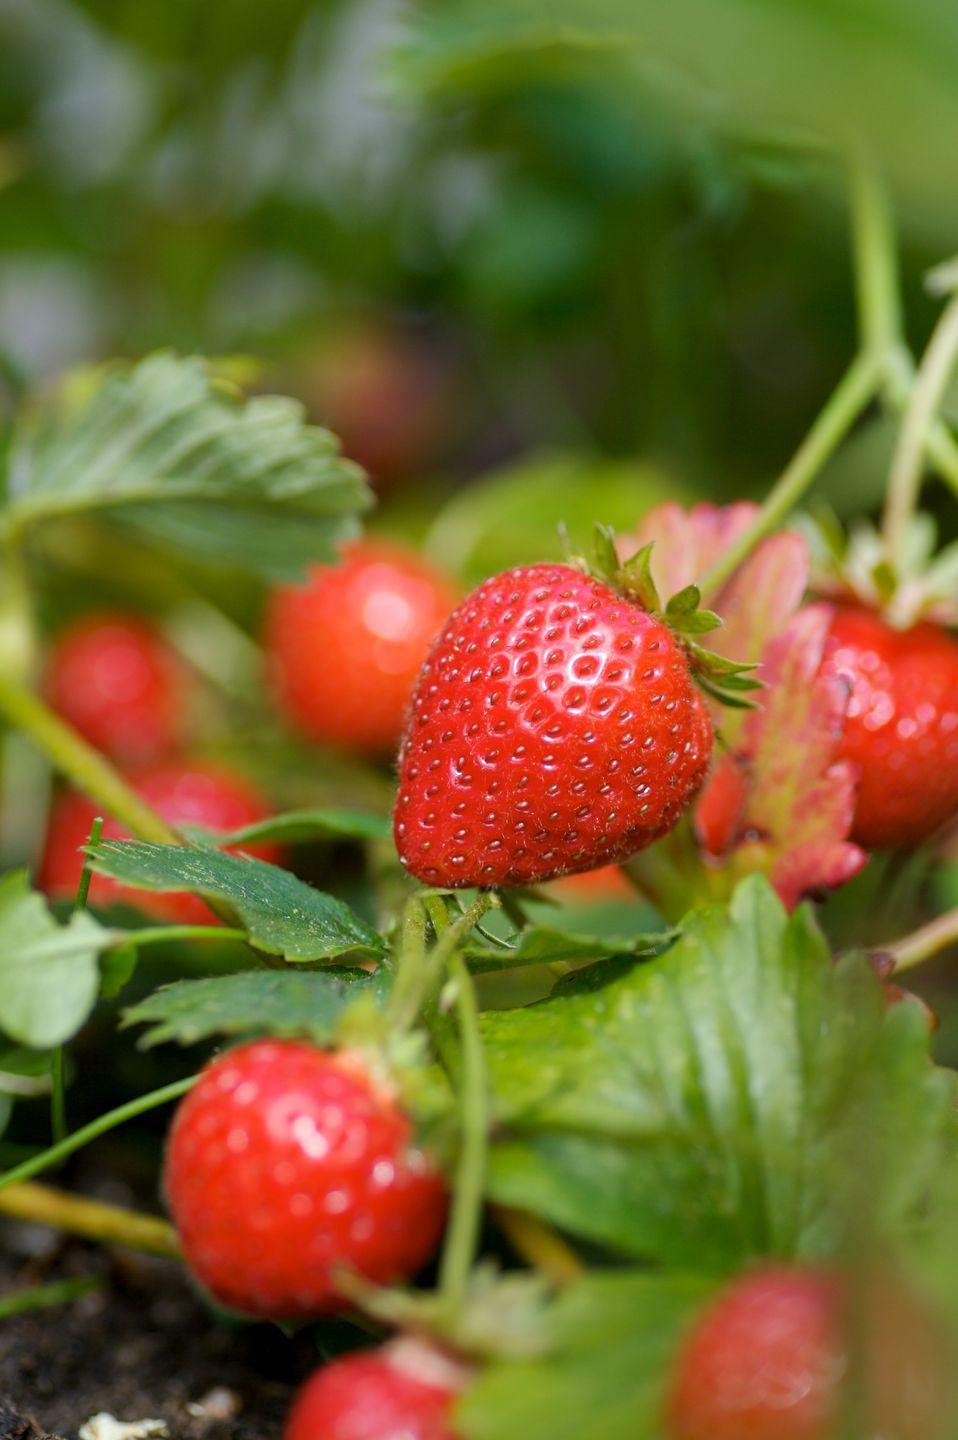 """<p>Plant your strawberries during <a href=""""https://www.housebeautiful.com/uk/garden/a35900181/spring-summer-gardening-trends/"""" rel=""""nofollow noopener"""" target=""""_blank"""" data-ylk=""""slk:spring"""" class=""""link rapid-noclick-resp"""">spring</a> or autumn, preferably in a sunny and sheltered position. Easy to plant and mostly trouble free, these bright red fruits are perfect for children to grow (and eat) during the holidays. <br></p><p>'This is one of the most rewarding child-proof plants you can try this summer half-term,' J Parker's add. 'The strawberry is easy to plant and requires very little maintenance. The Strawberry Florence, for instance, a late strawberry variety, is known to be hardy and resilient to diseases.'</p><p><a class=""""link rapid-noclick-resp"""" href=""""https://go.redirectingat.com?id=127X1599956&url=https%3A%2F%2Fwww.primrose.co.uk%2F-p-133953.html&sref=https%3A%2F%2Fwww.housebeautiful.com%2Fuk%2Fgarden%2Fplants%2Fg36446066%2Fplants-for-kids%2F"""" rel=""""nofollow noopener"""" target=""""_blank"""" data-ylk=""""slk:BUY NOW VIA PRIMROSE"""">BUY NOW VIA PRIMROSE</a></p>"""